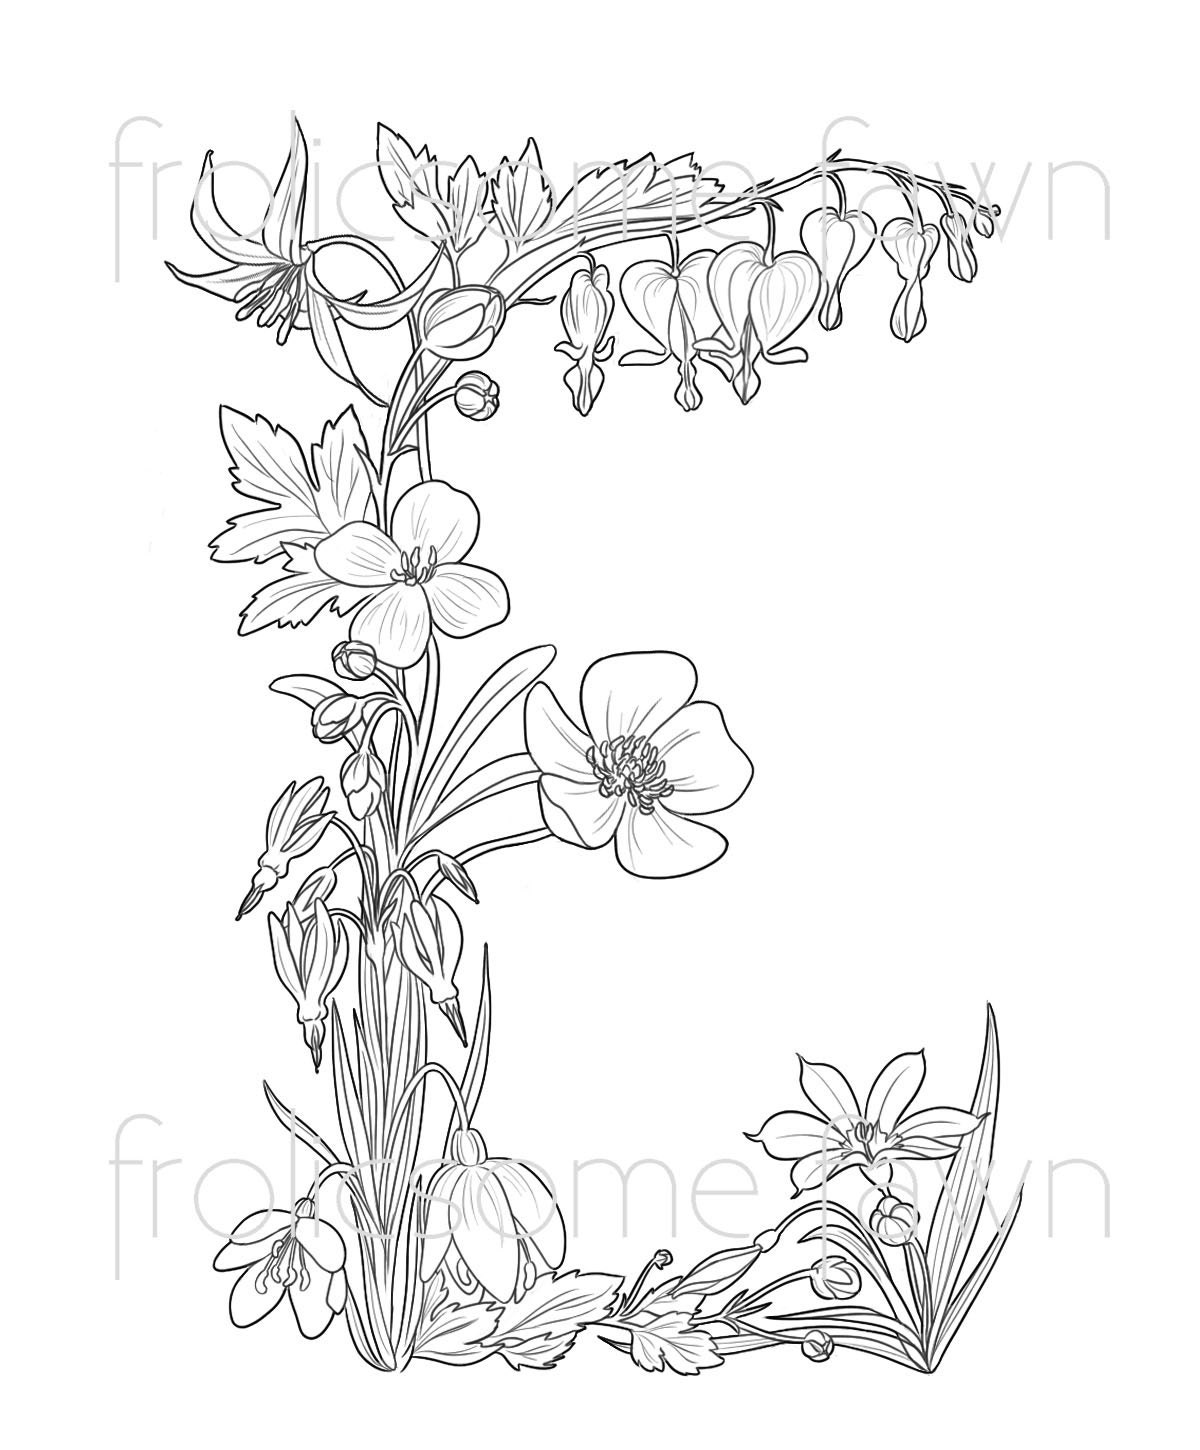 coloring pages for kids wild flowers | Wild Flower Pages For Adults Coloring Pages